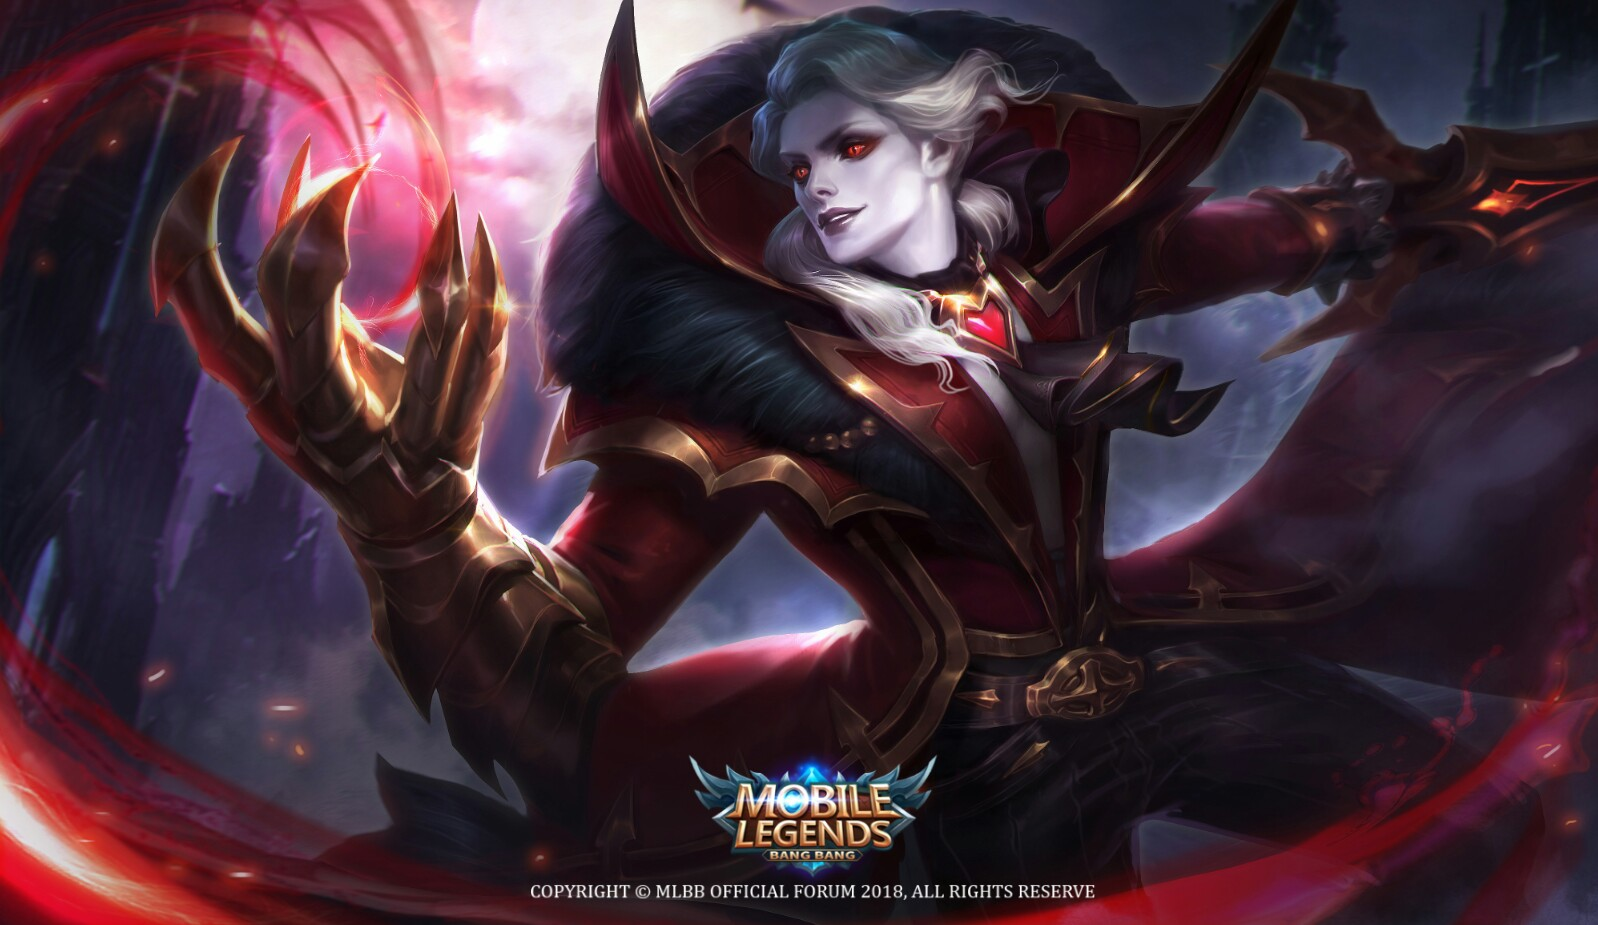 120 Best Mobile Legends Wallpapers Ever Download for Mobile 1598x925